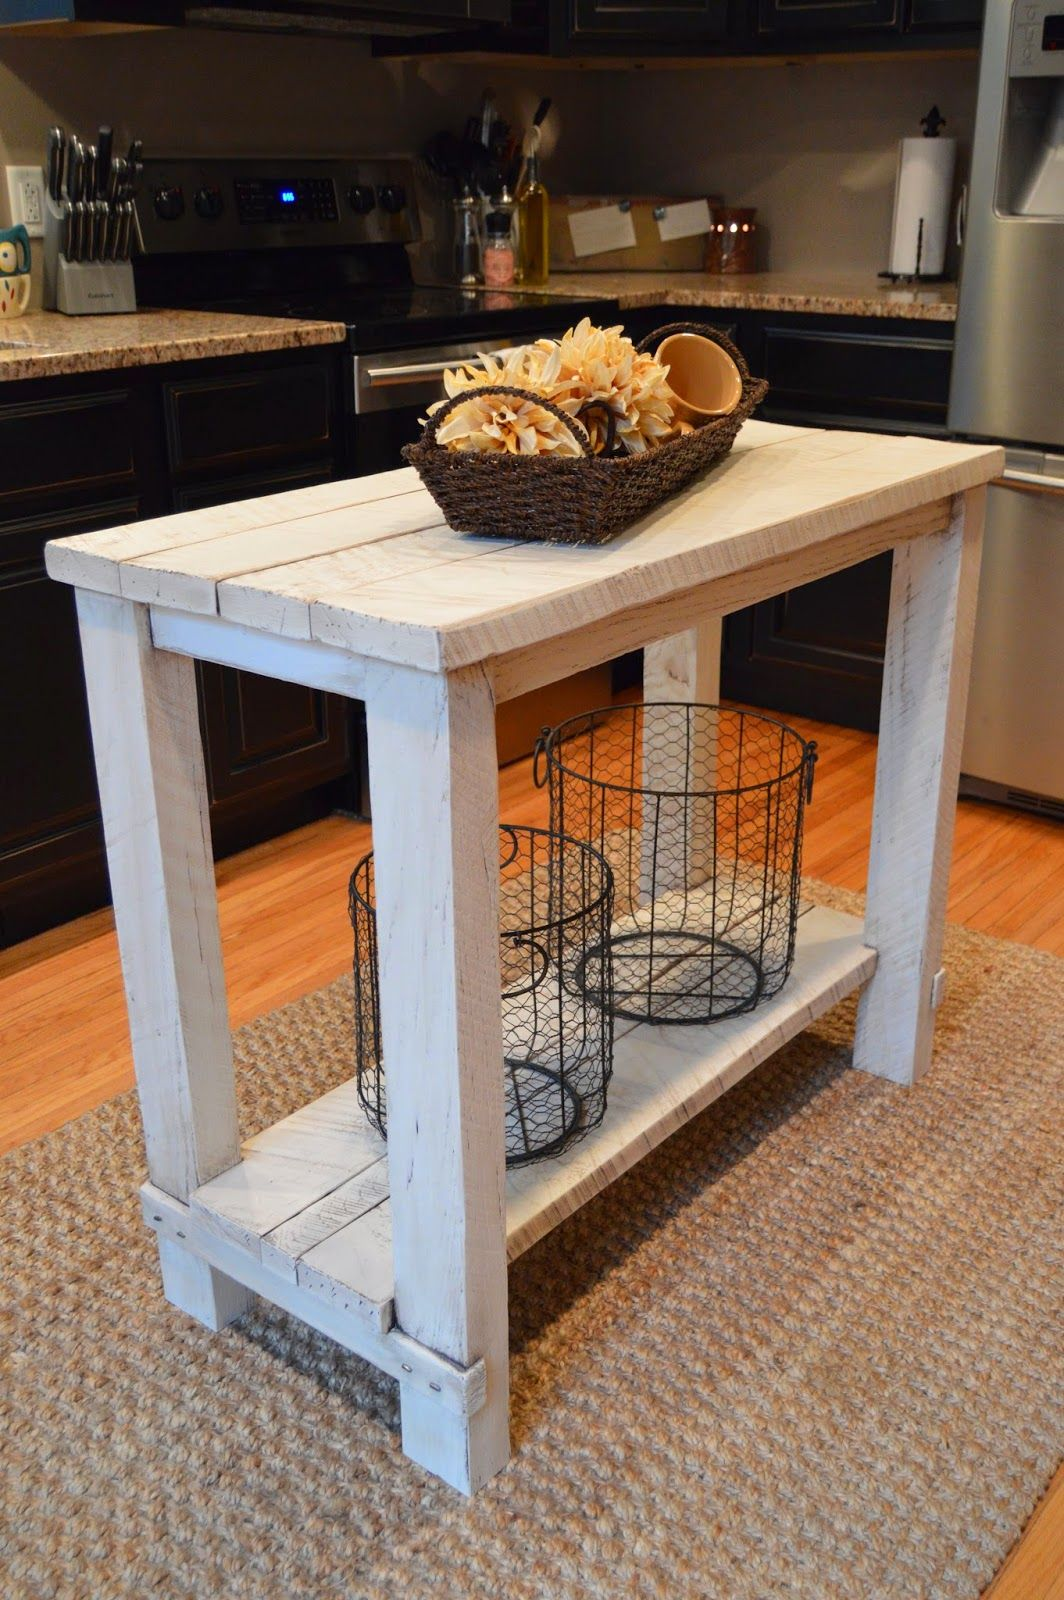 15 Gorgeous DIY Kitchen Islands For Every Budget | Wood kitchen ...